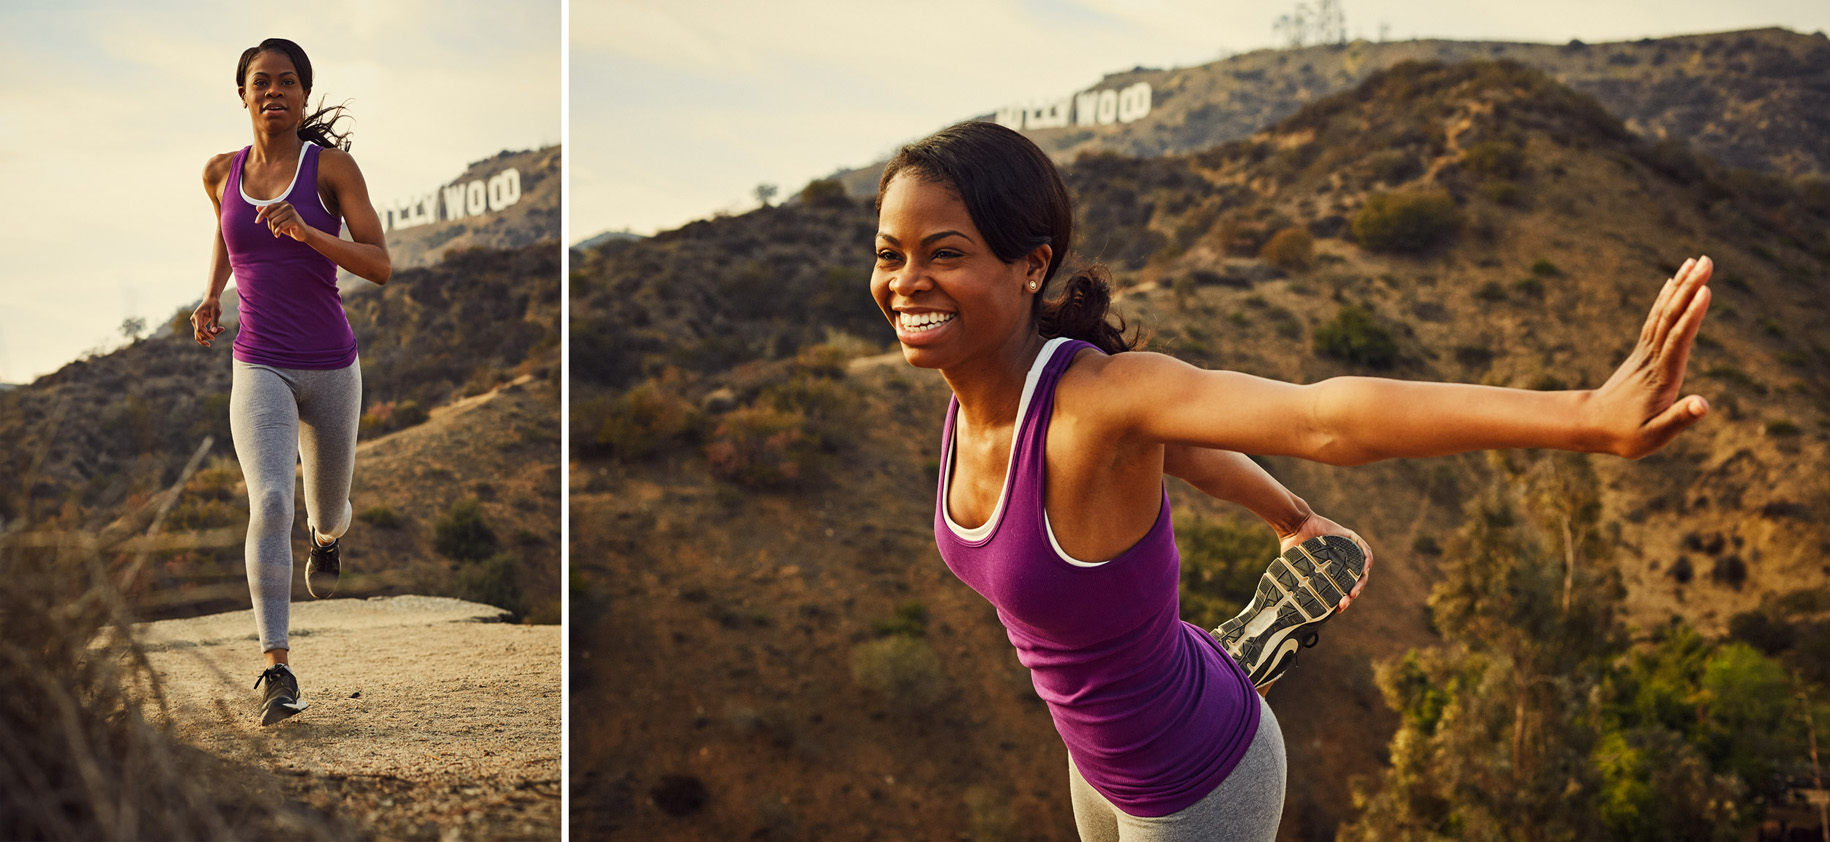 jeff-allen-lifestyle-dae-mcdonald_35-la-hollywood-hills-sports-2up-smile-stretch-run